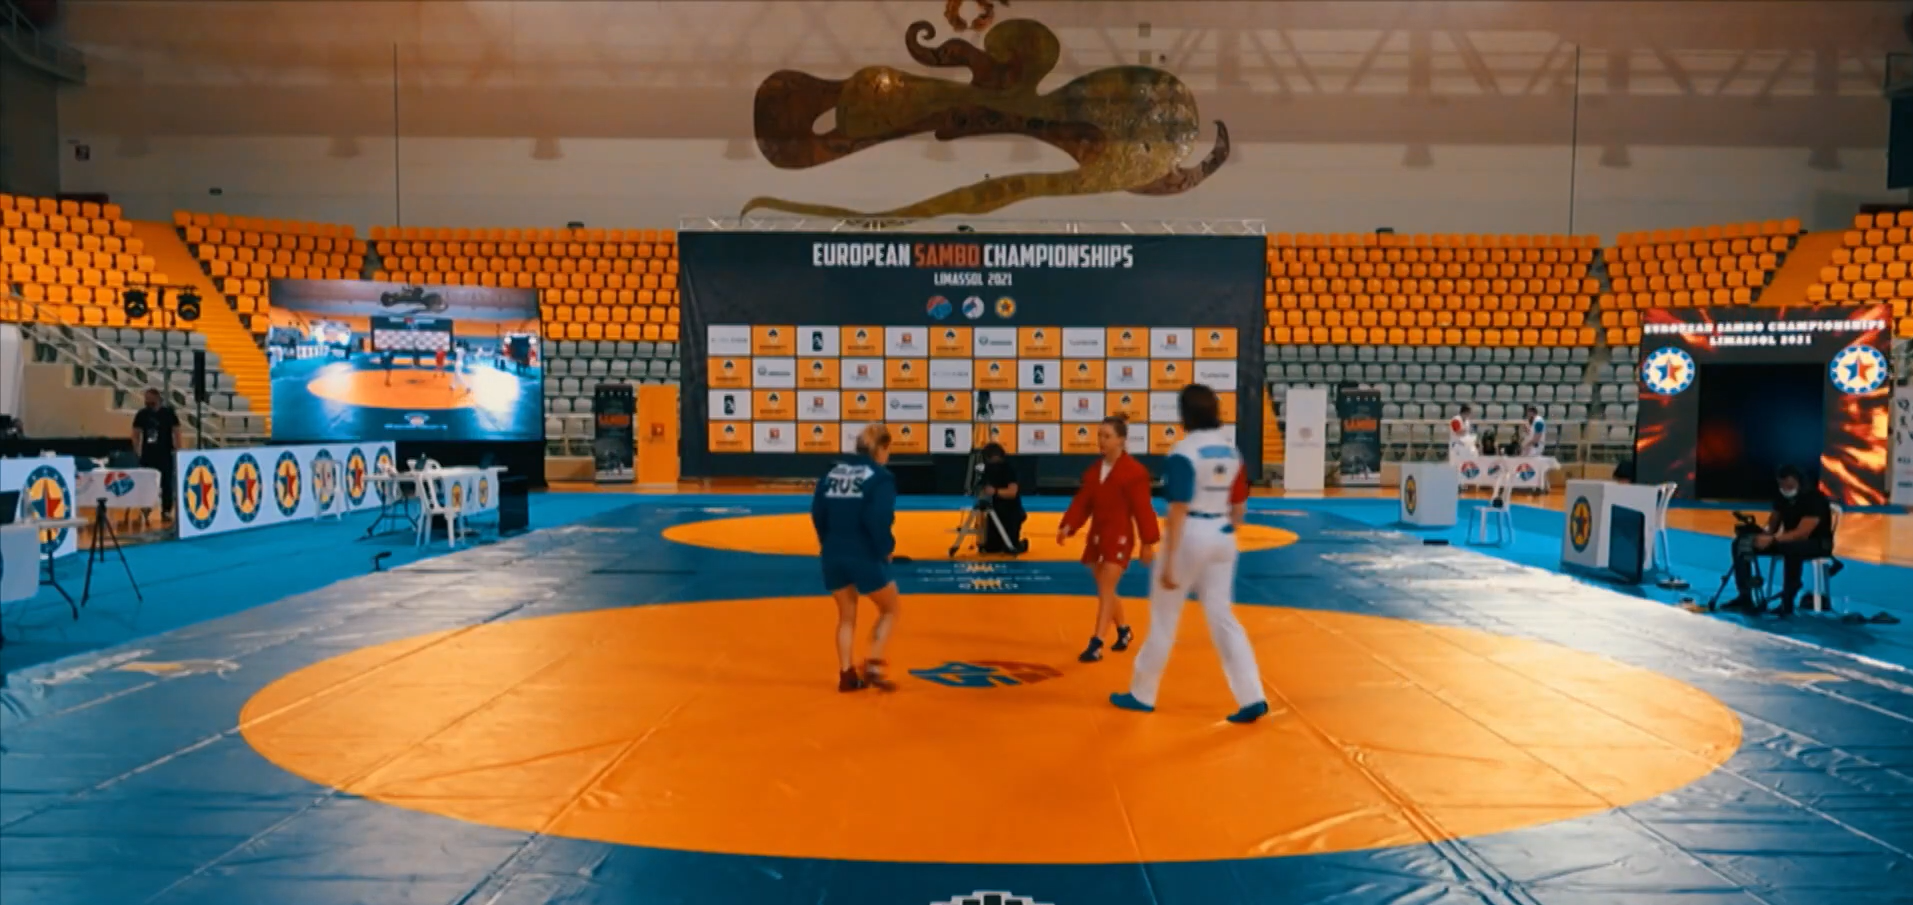 ICARUS Sports Expands Into Martial Arts – Forges Landmark Partnership With International Sambo Federation (FIAS)